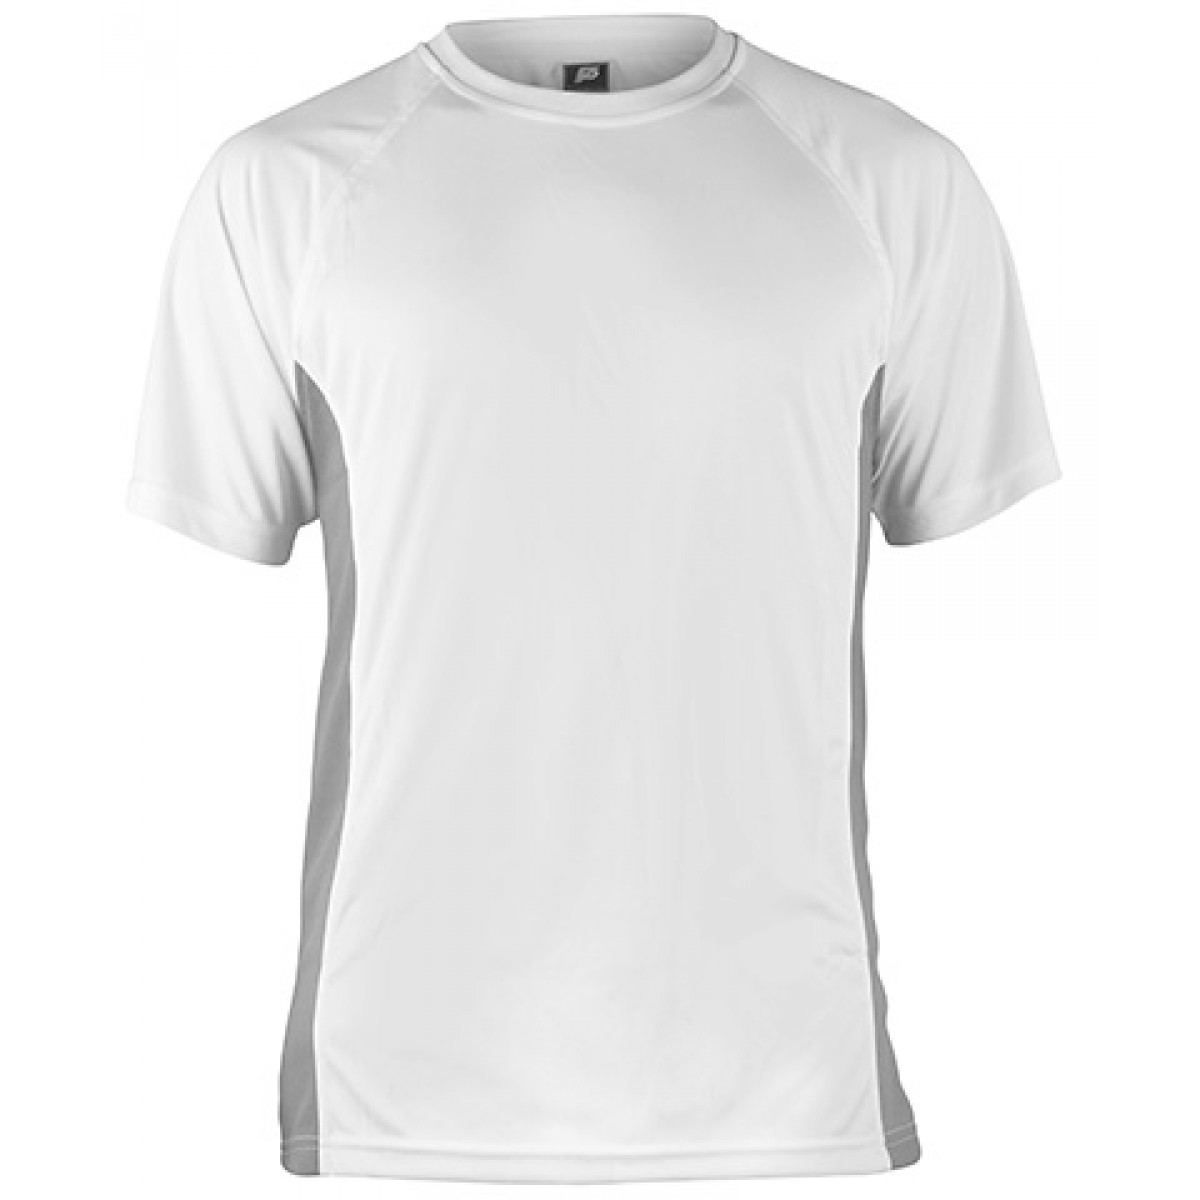 Short Sleeves Performance With Side Insert-White/Gray-YM